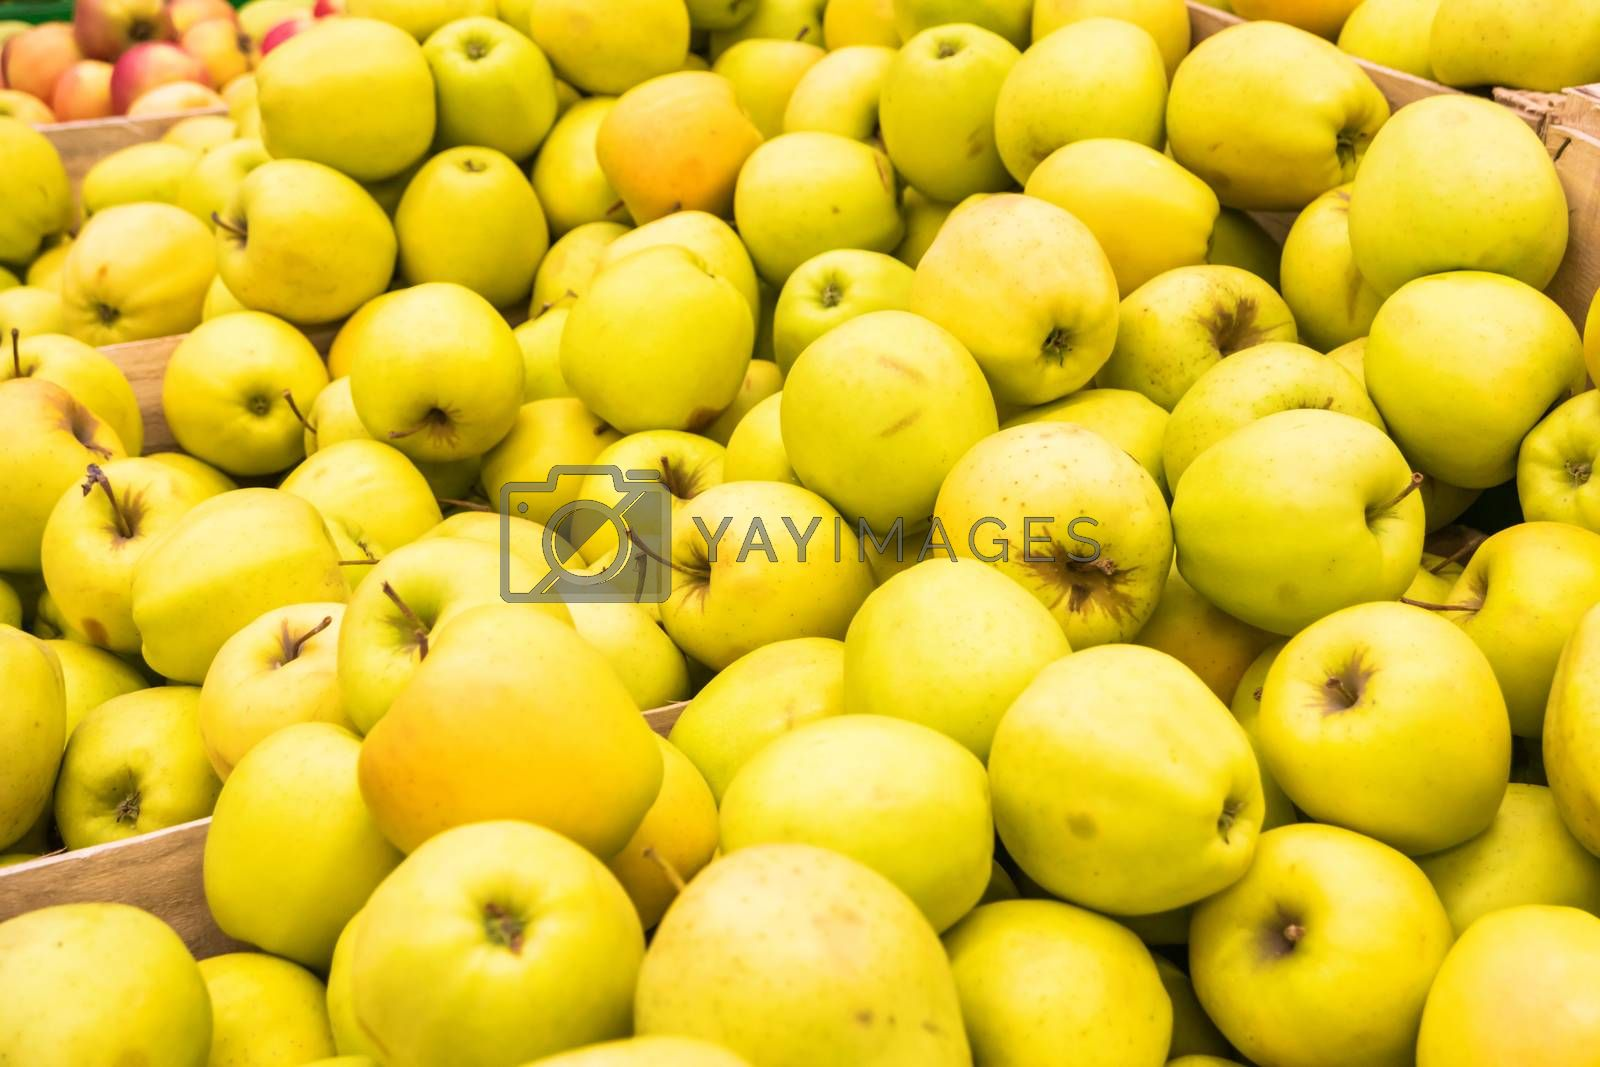 Pile of yellow fresh apples in a wooden crates at farmers market